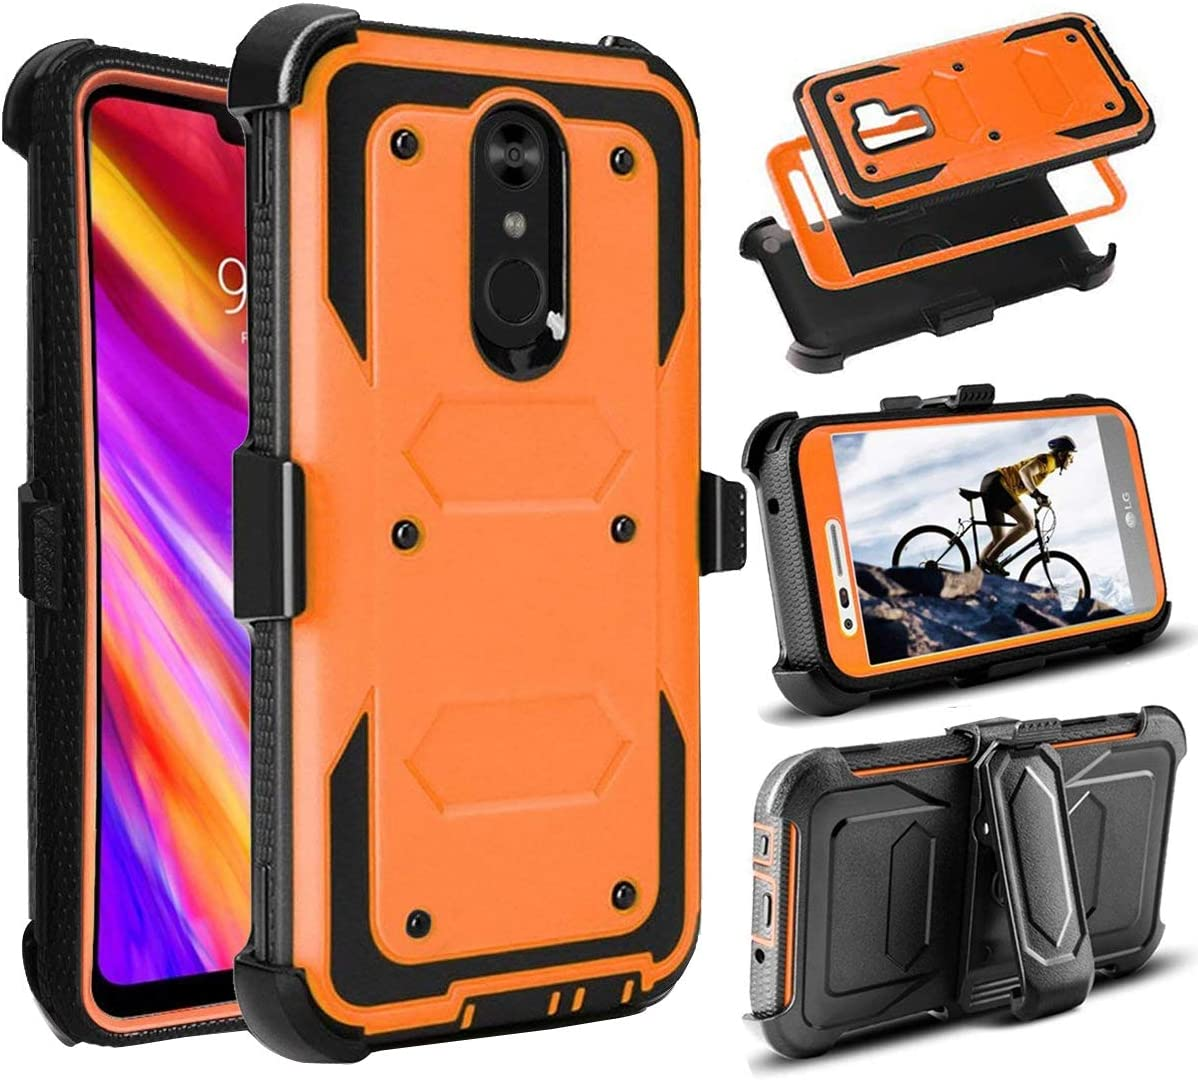 LG Stylo 4 / Stylo 4 Plus/LG Q Stylus Case, Shockproof Full Body Rugged Holster Armor Protective Case Cover with Kickstand and Swivel Belt Clip Built-in Screen Protector for LG Stylo 4 (Orange)